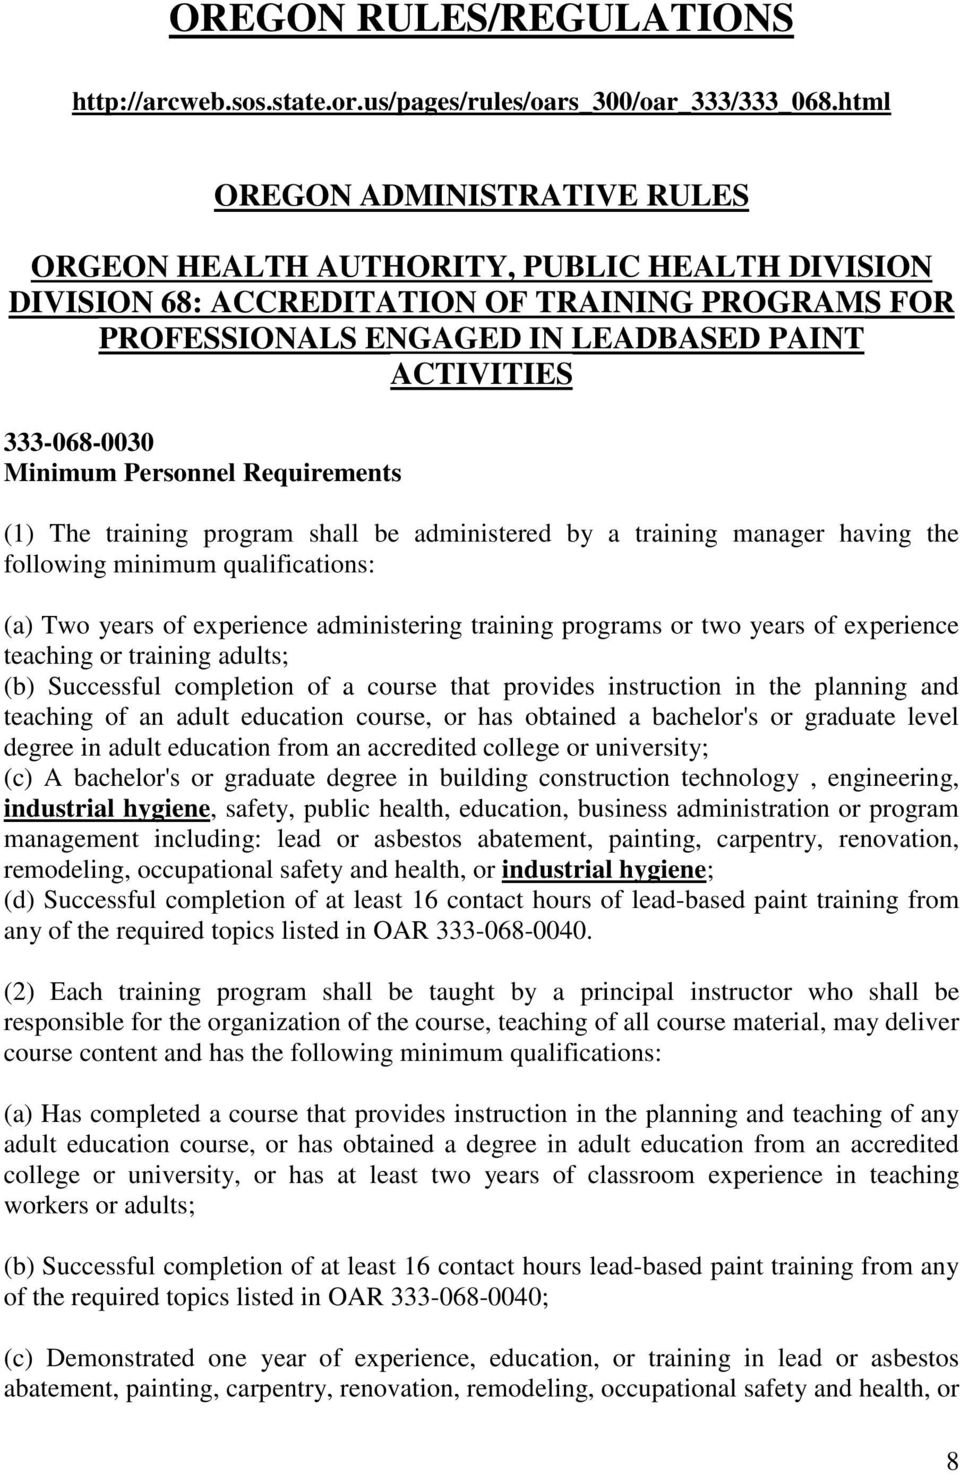 Minimum Personnel Requirements (1) The training program shall be administered by a training manager having the following minimum qualifications: (a) Two years of experience administering training